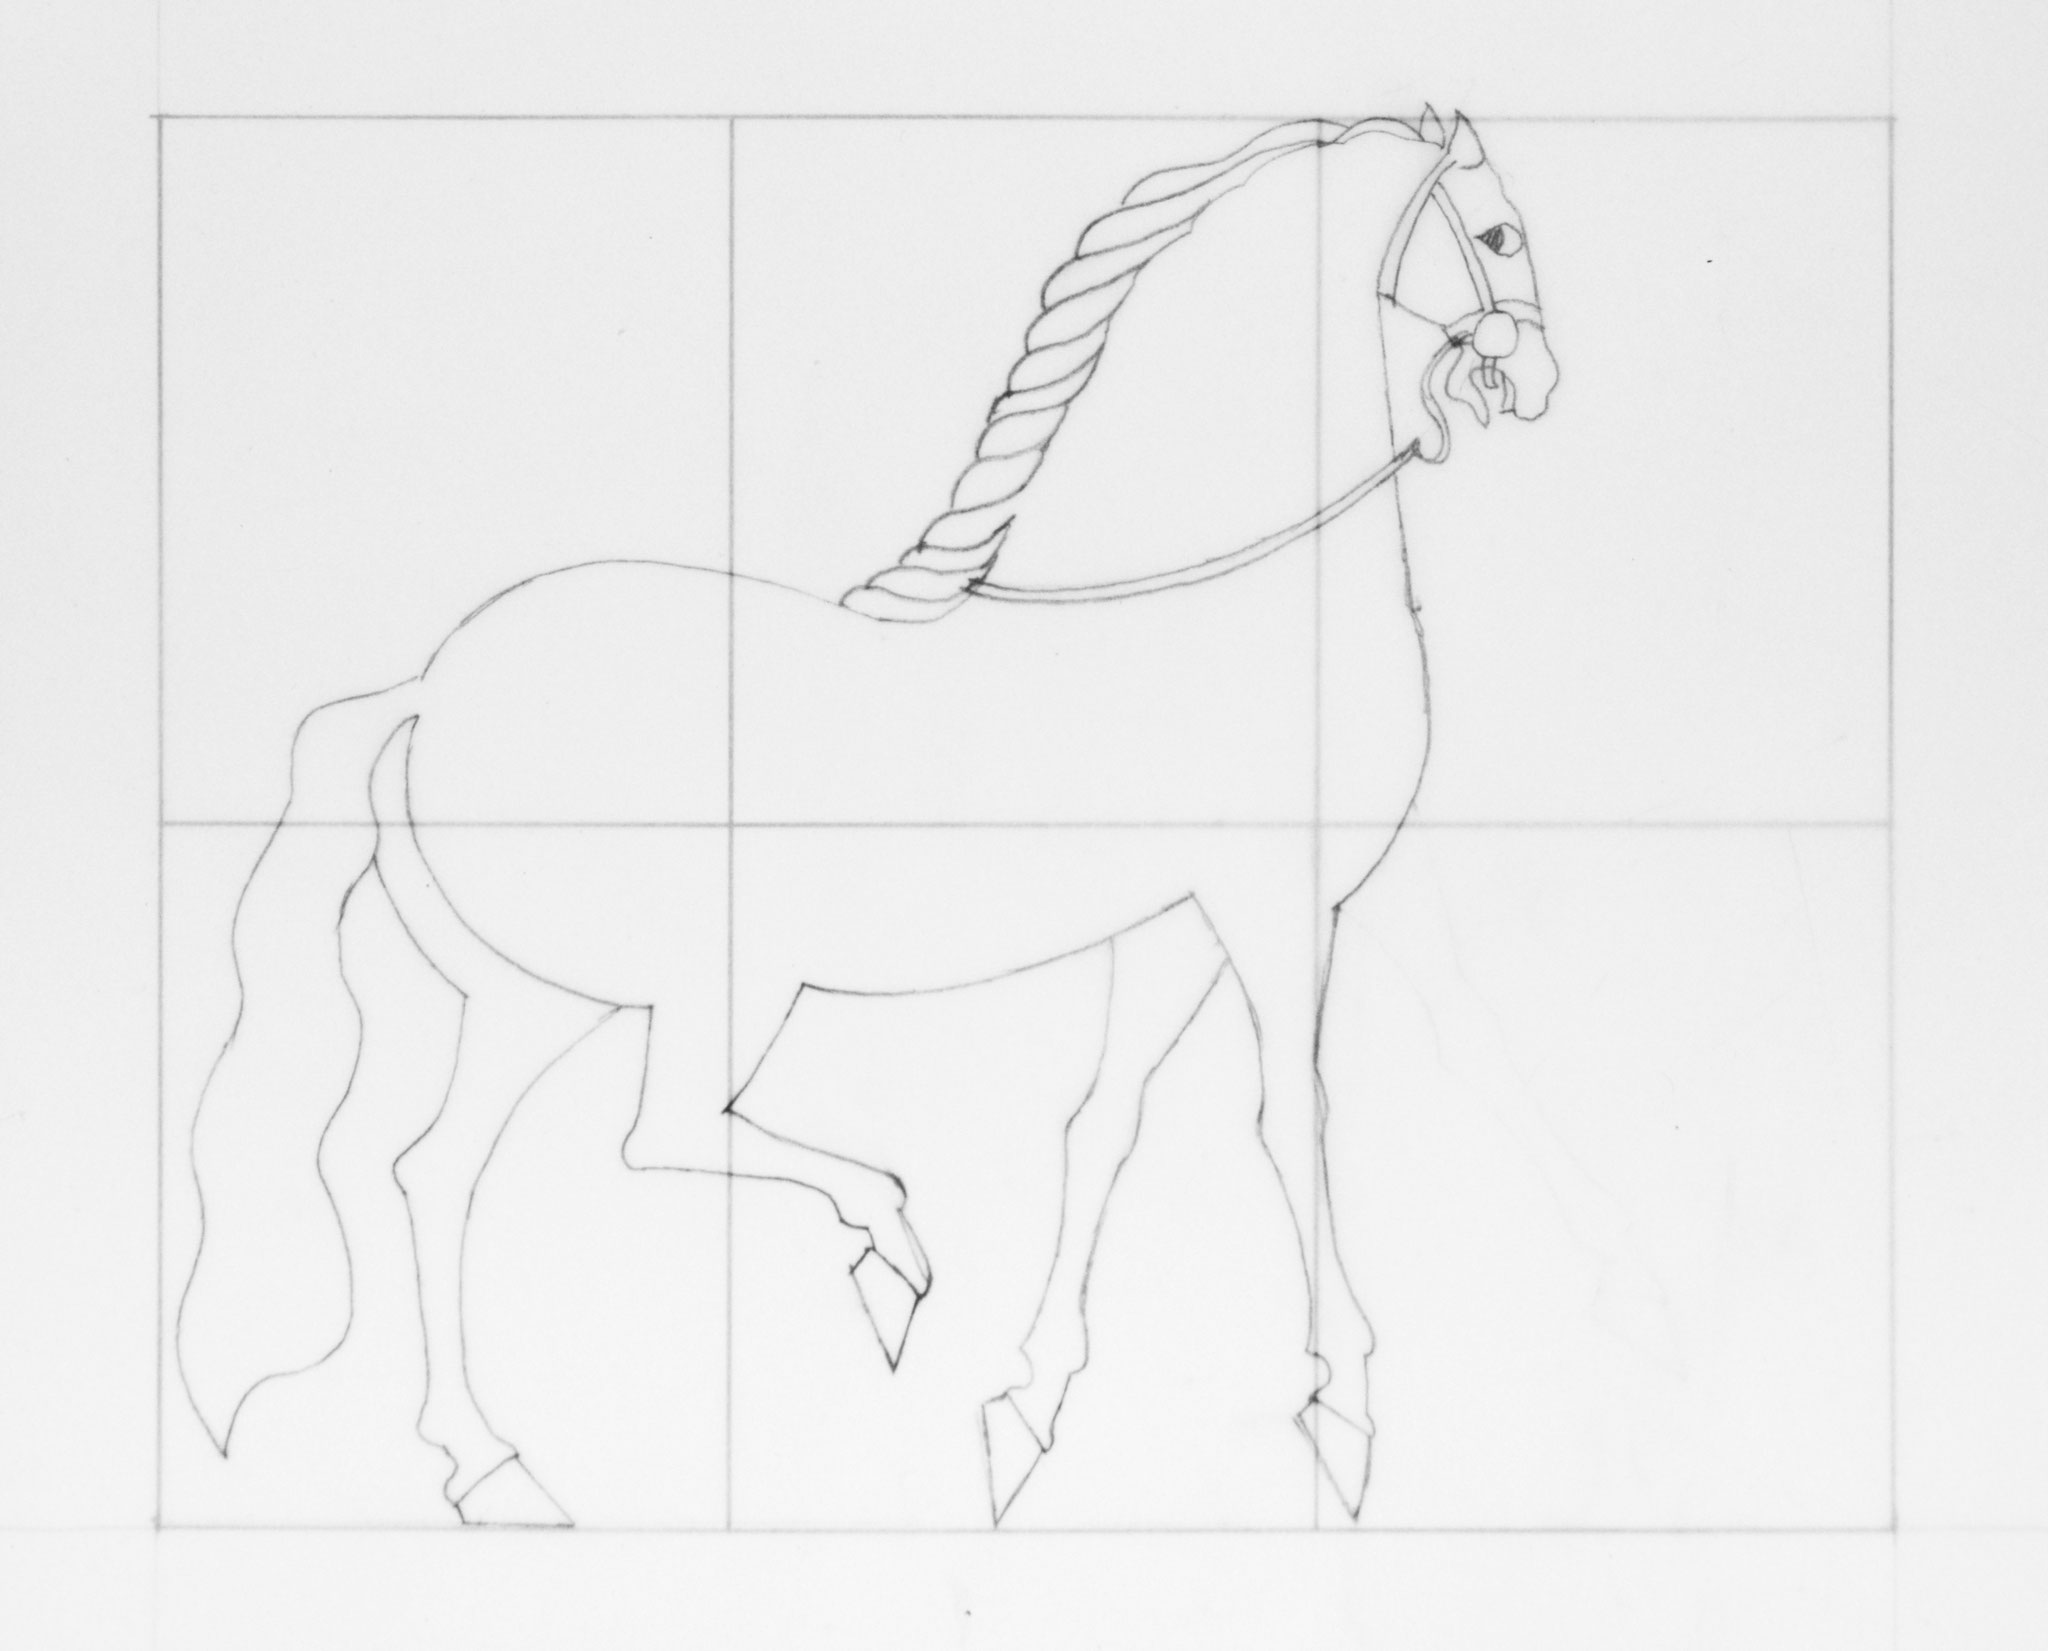 Study of Oiron Horse, pencil on tracing paper, 10,9 x 13,3, 1991 - Photo Hadler/Stuhr